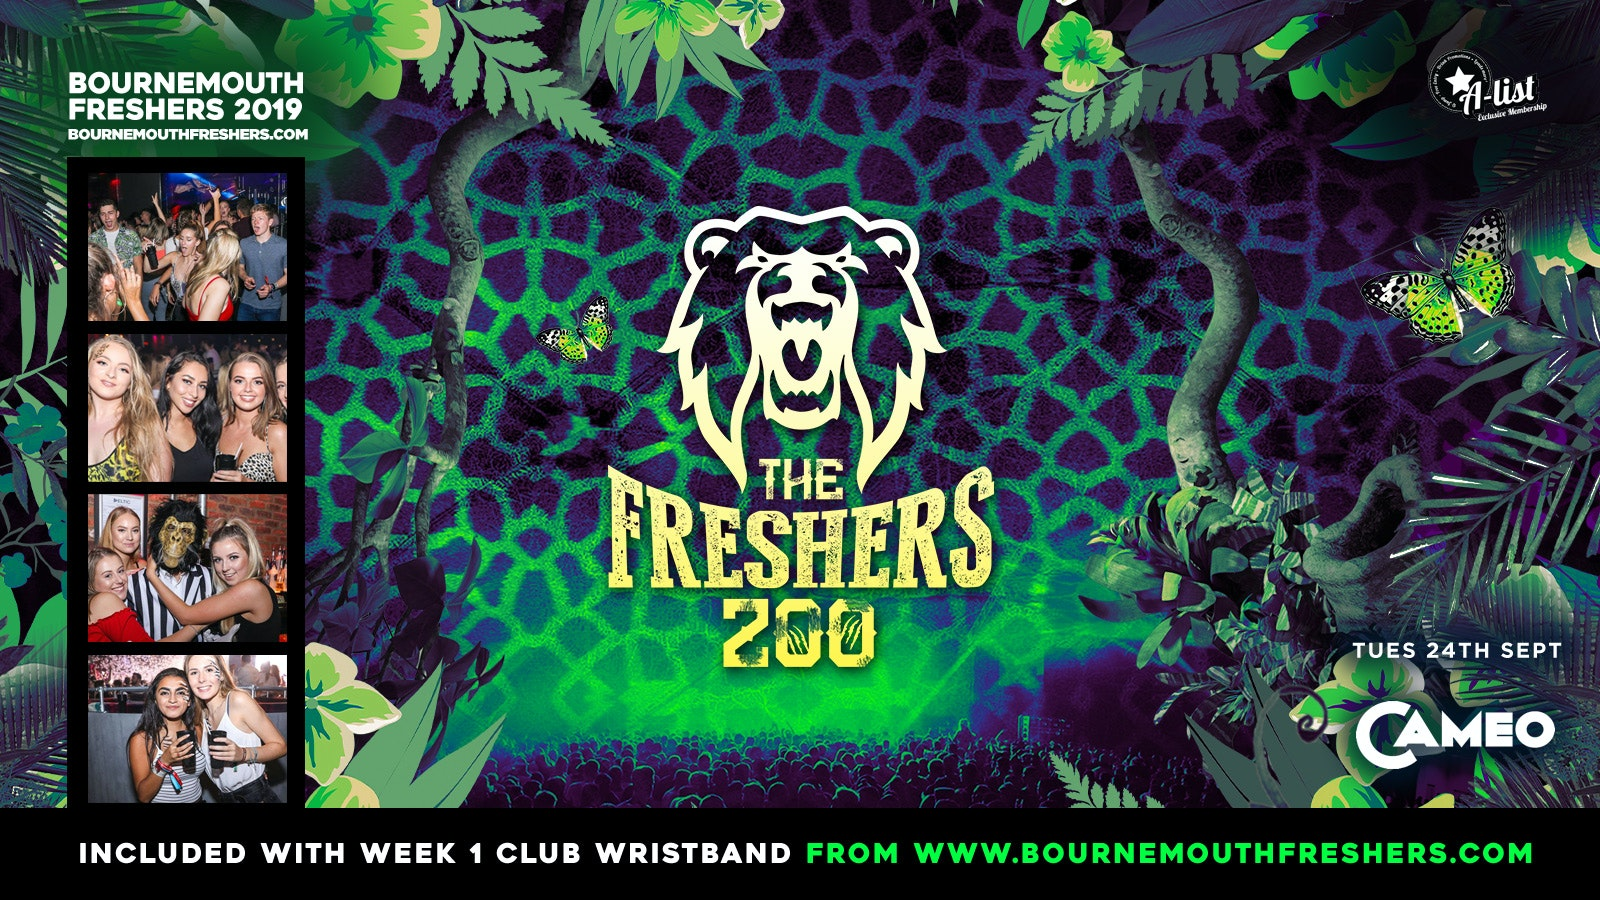 The Freshers Zoo at Cameo // Bournemouth Freshers 2019